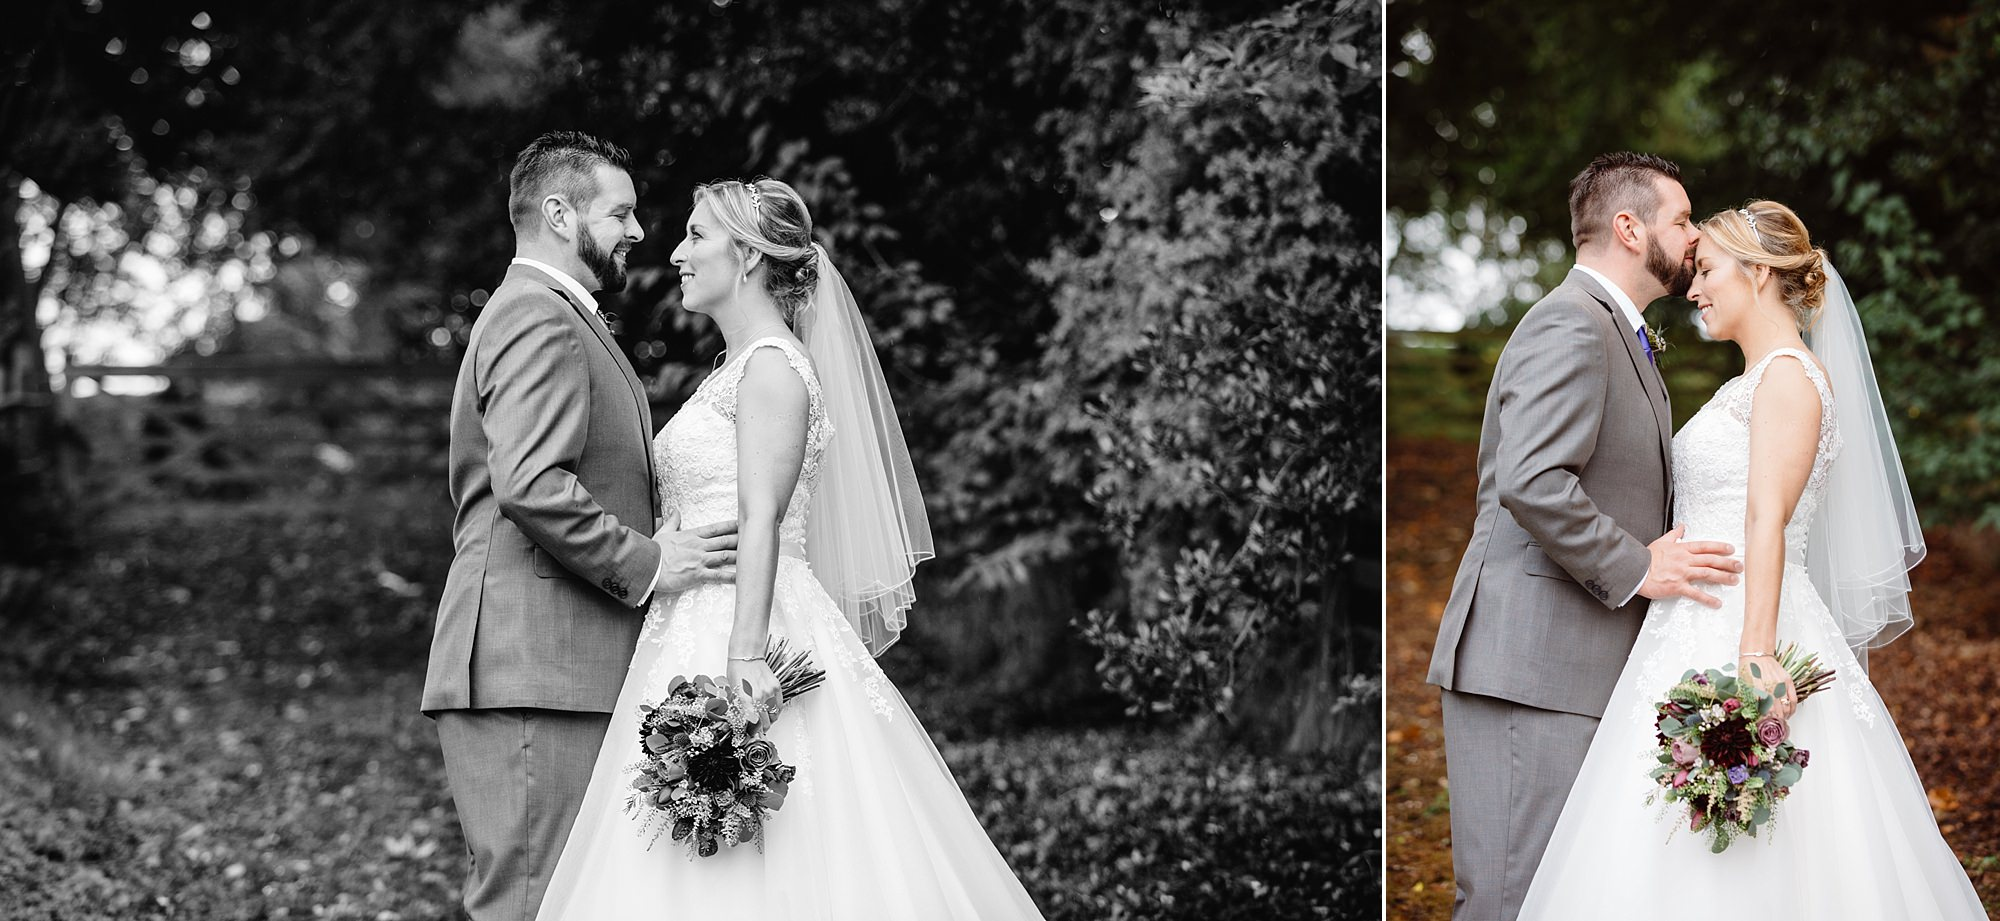 A fun wedding at Plas Isaf - autumn portrait of bride and groom